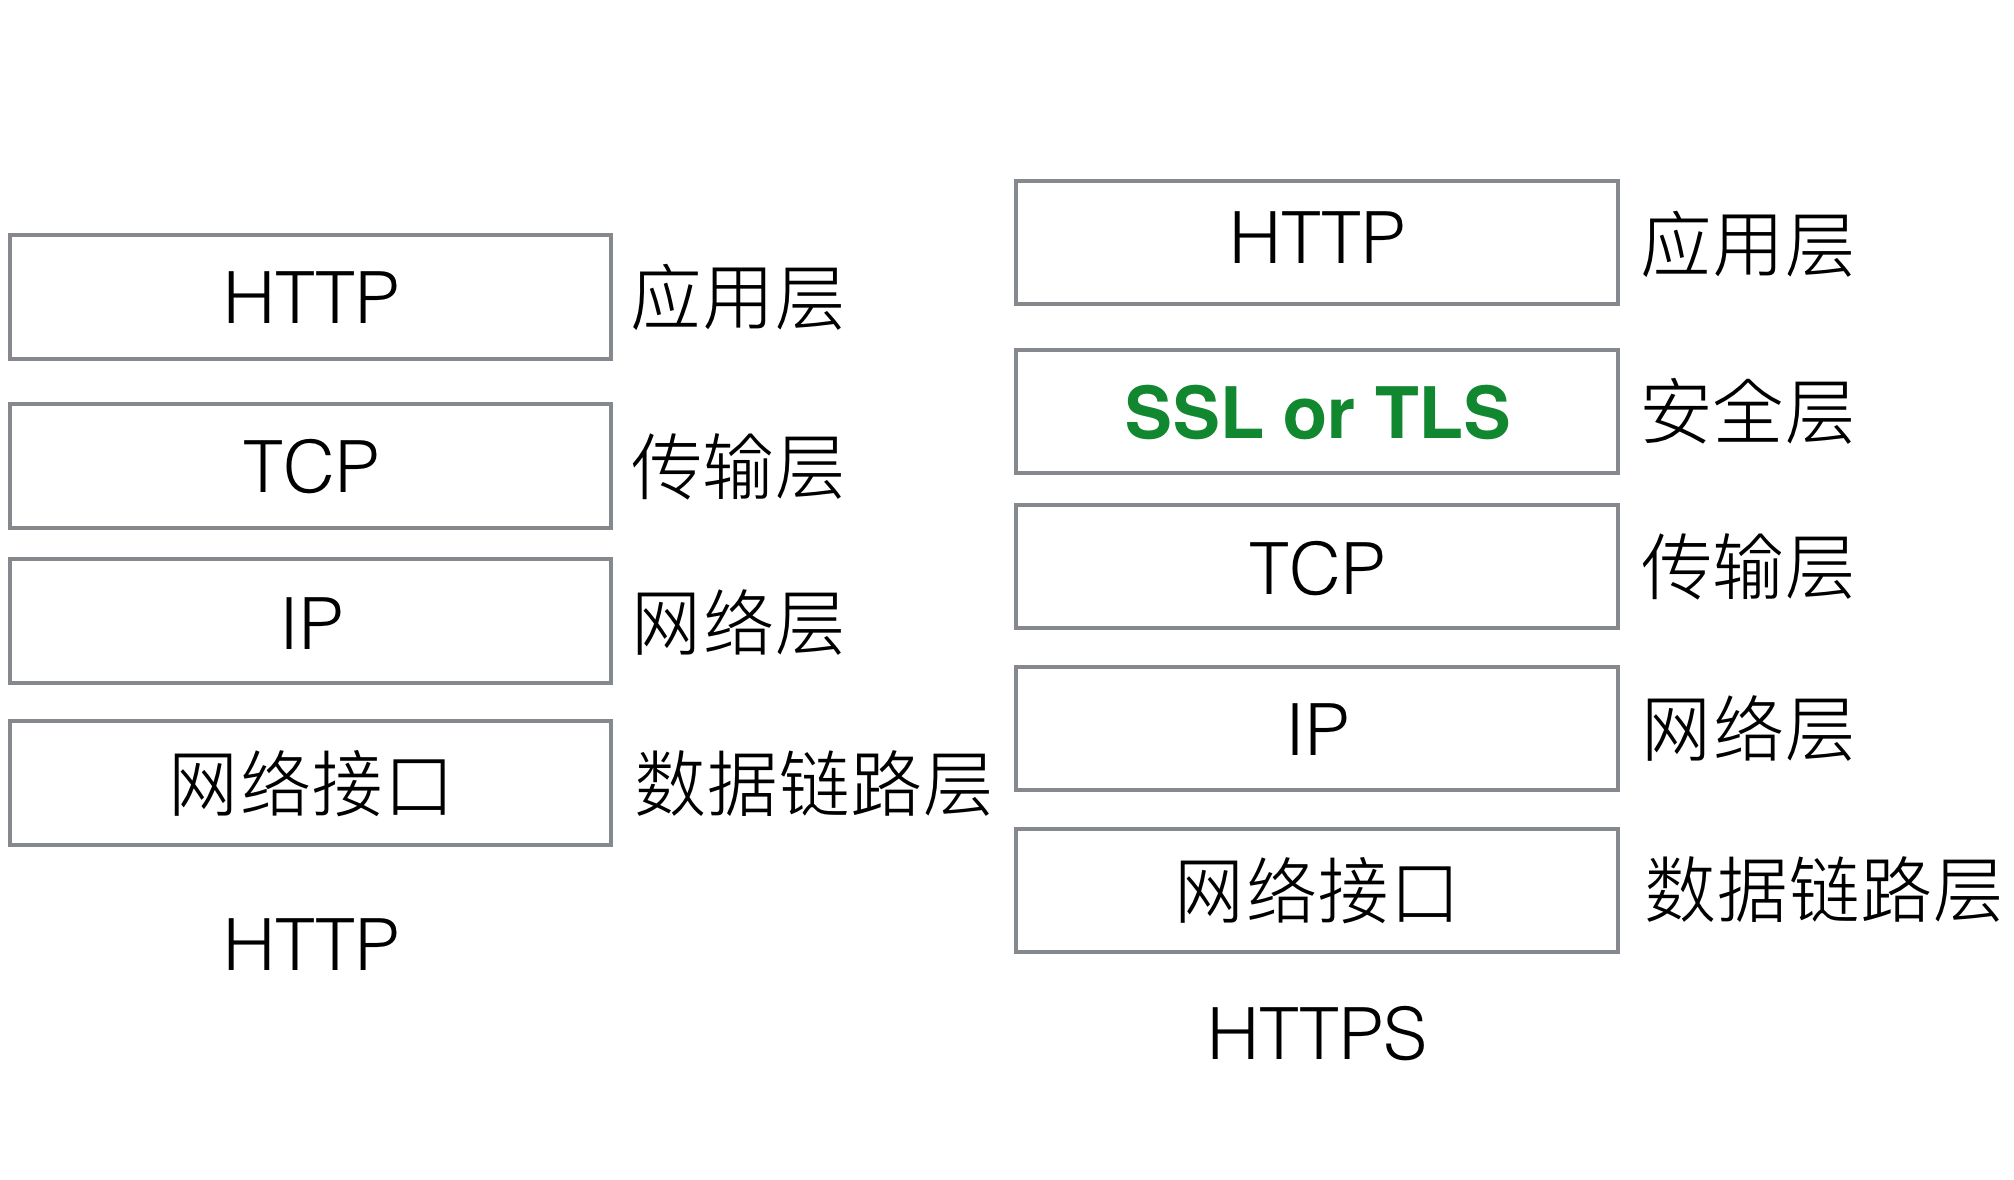 https-layer.png